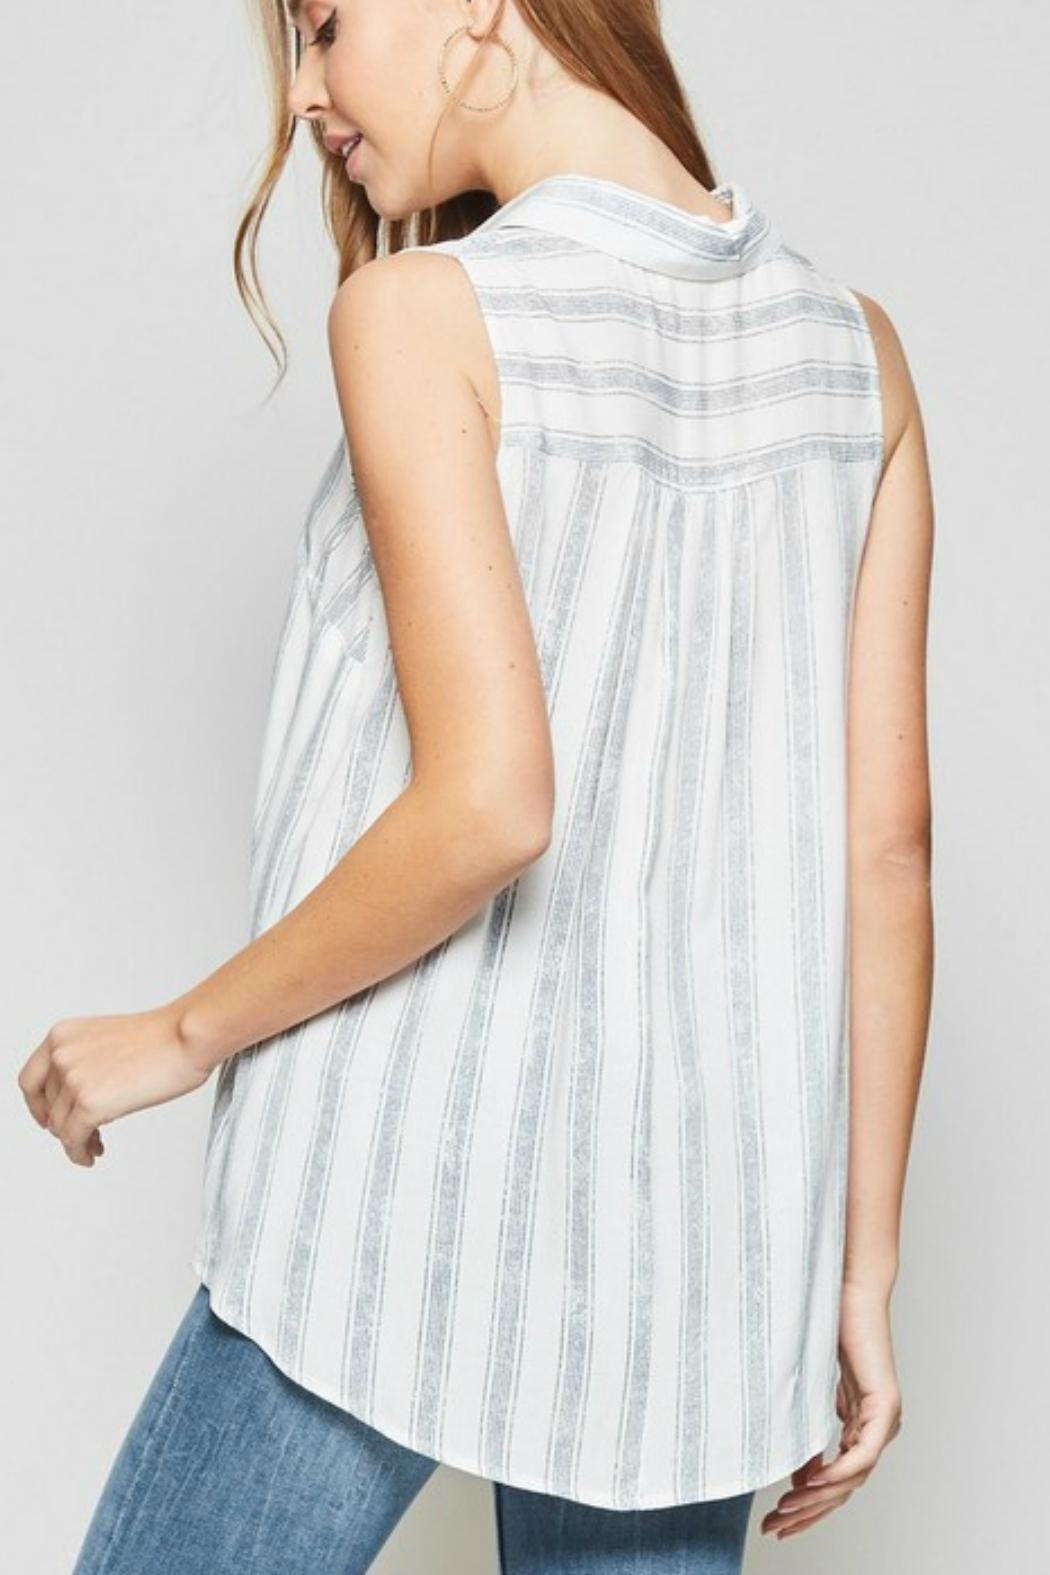 Andree by Unit Sleeveless Knotted Shirt - Front Full Image